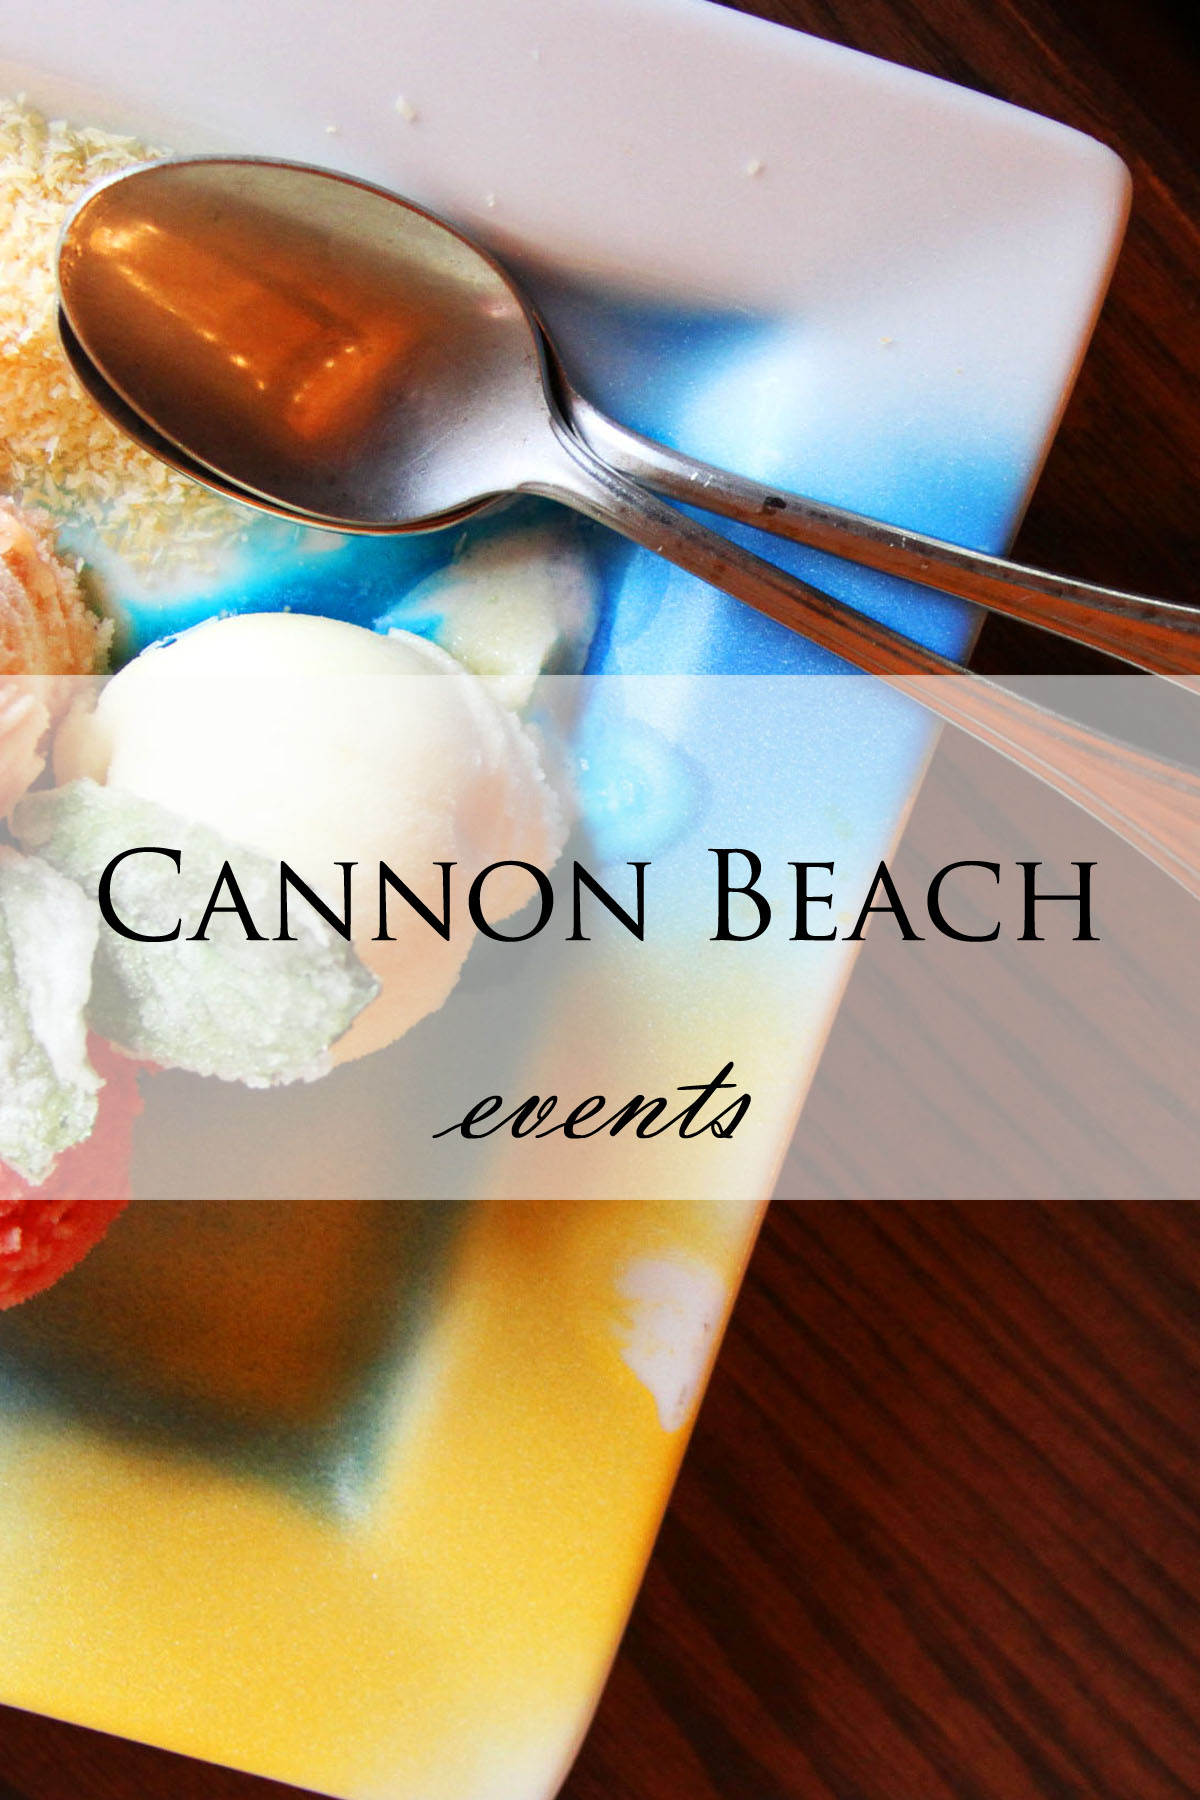 Cannon Beach Events